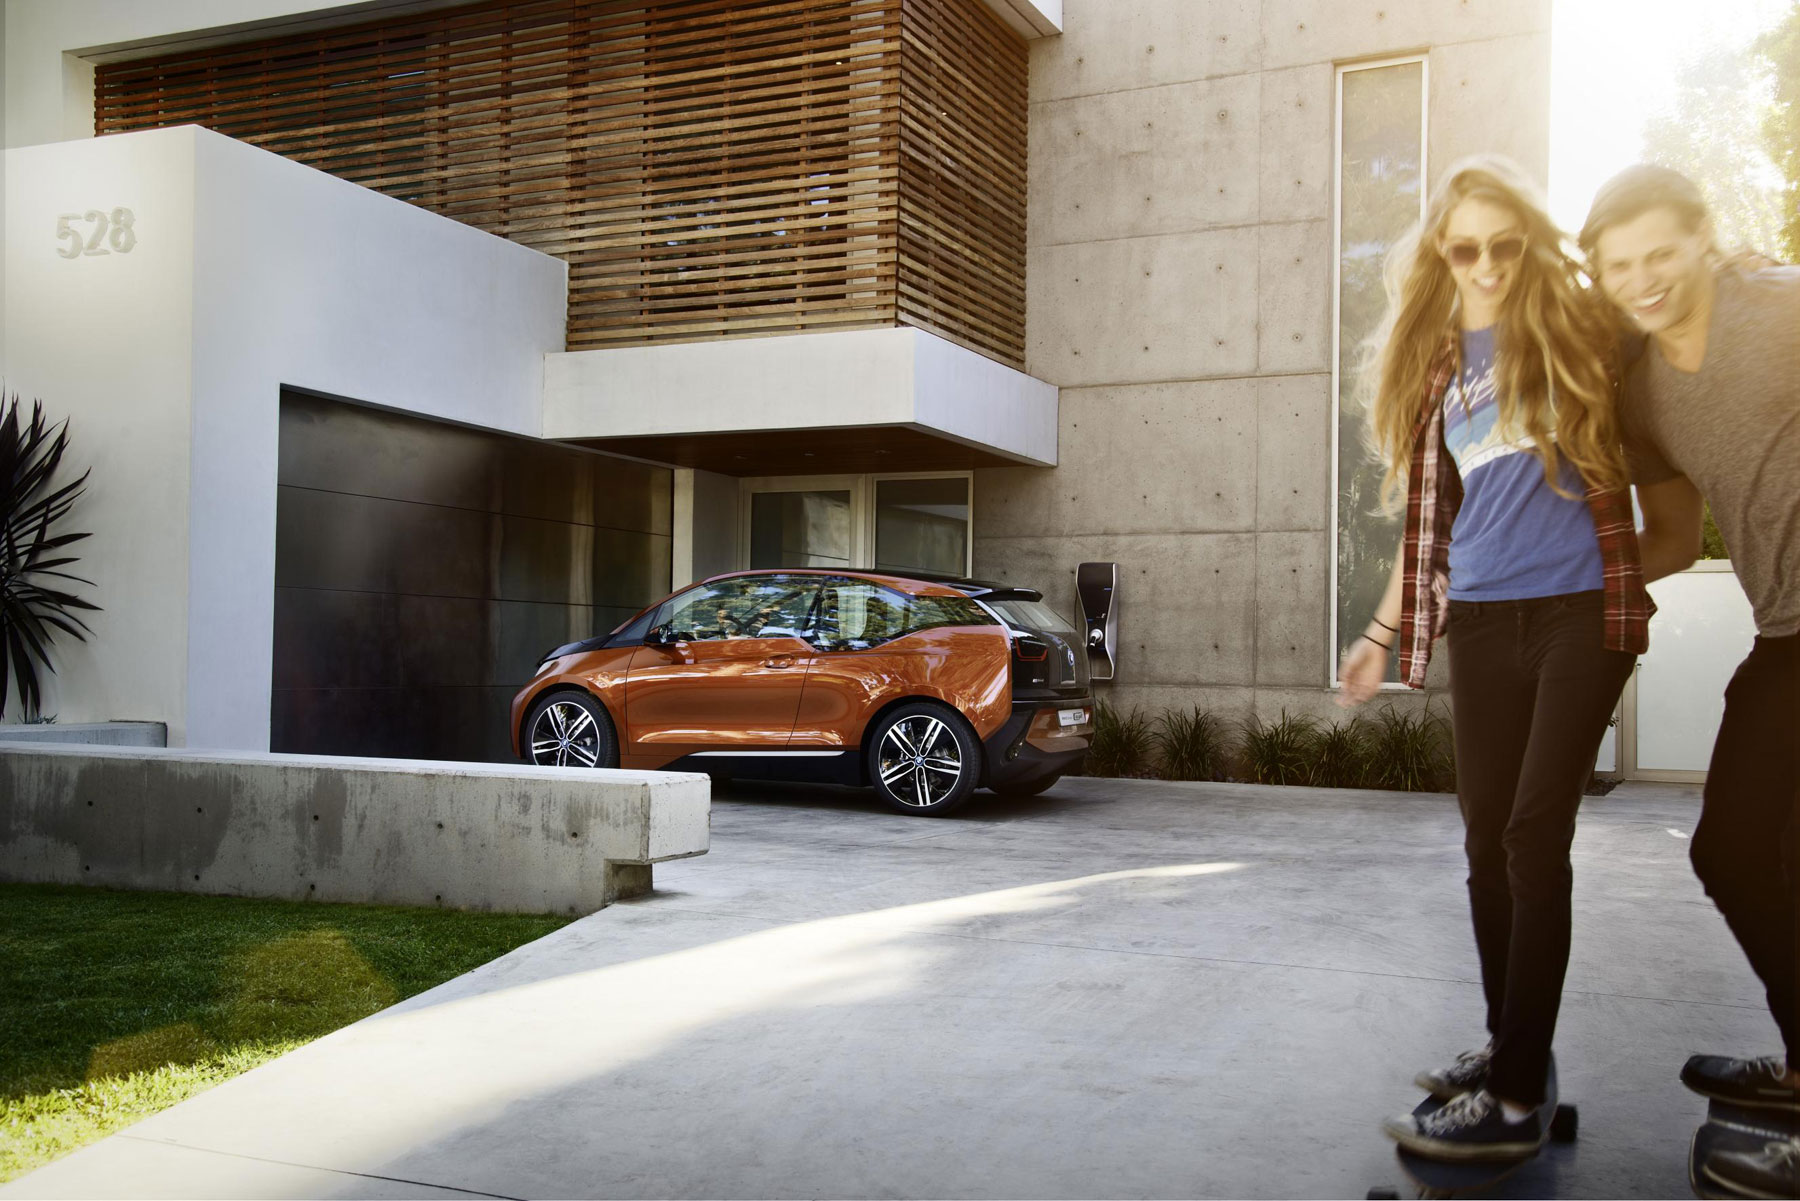 Best-electric-car-to-buy-uk-1